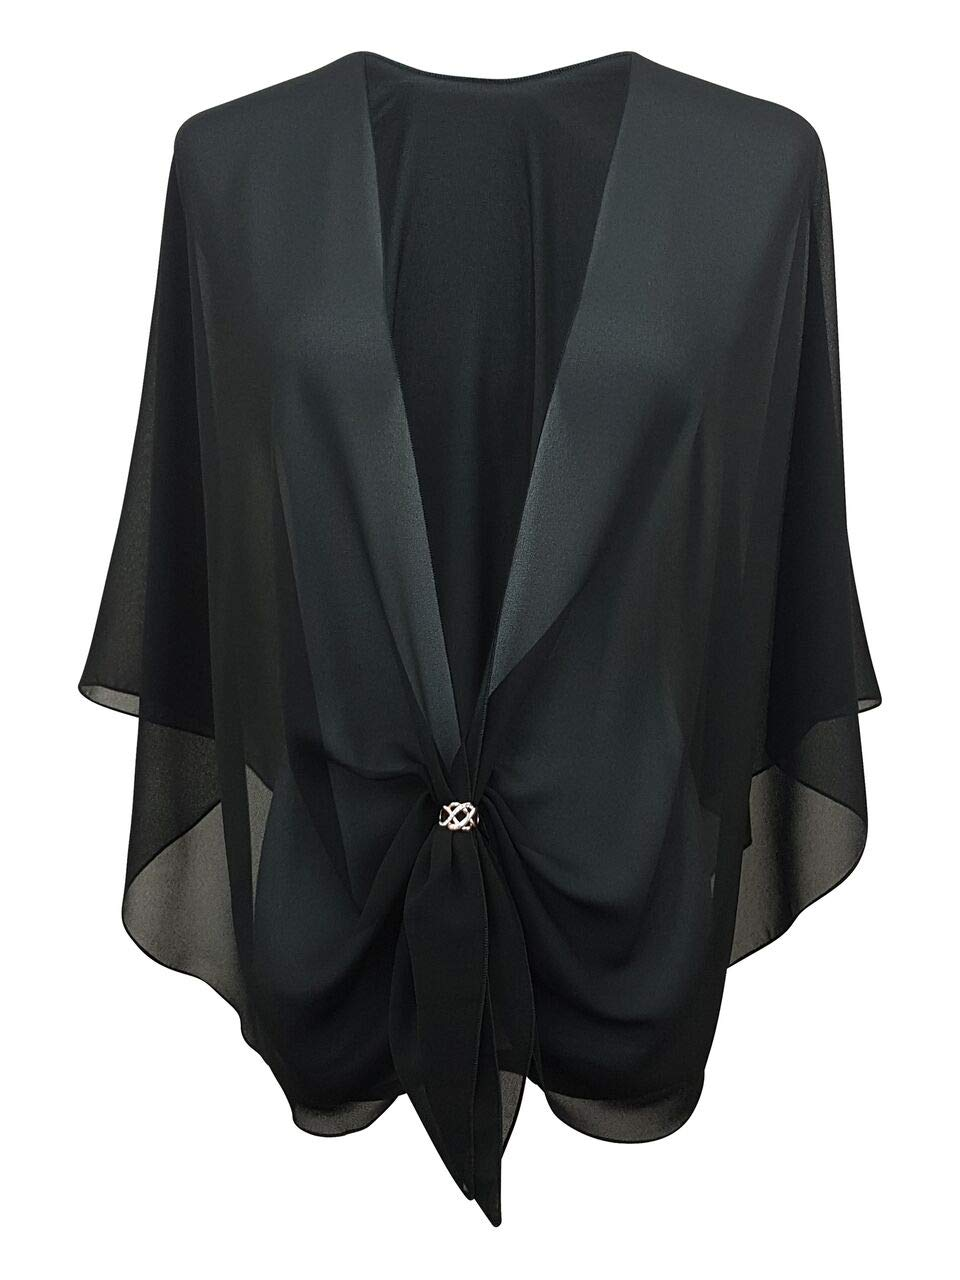 eXcaped Women's Evening Shawl Wrap Sheer Chiffon Open Front Cape and Silver Scarf Ring (Black)